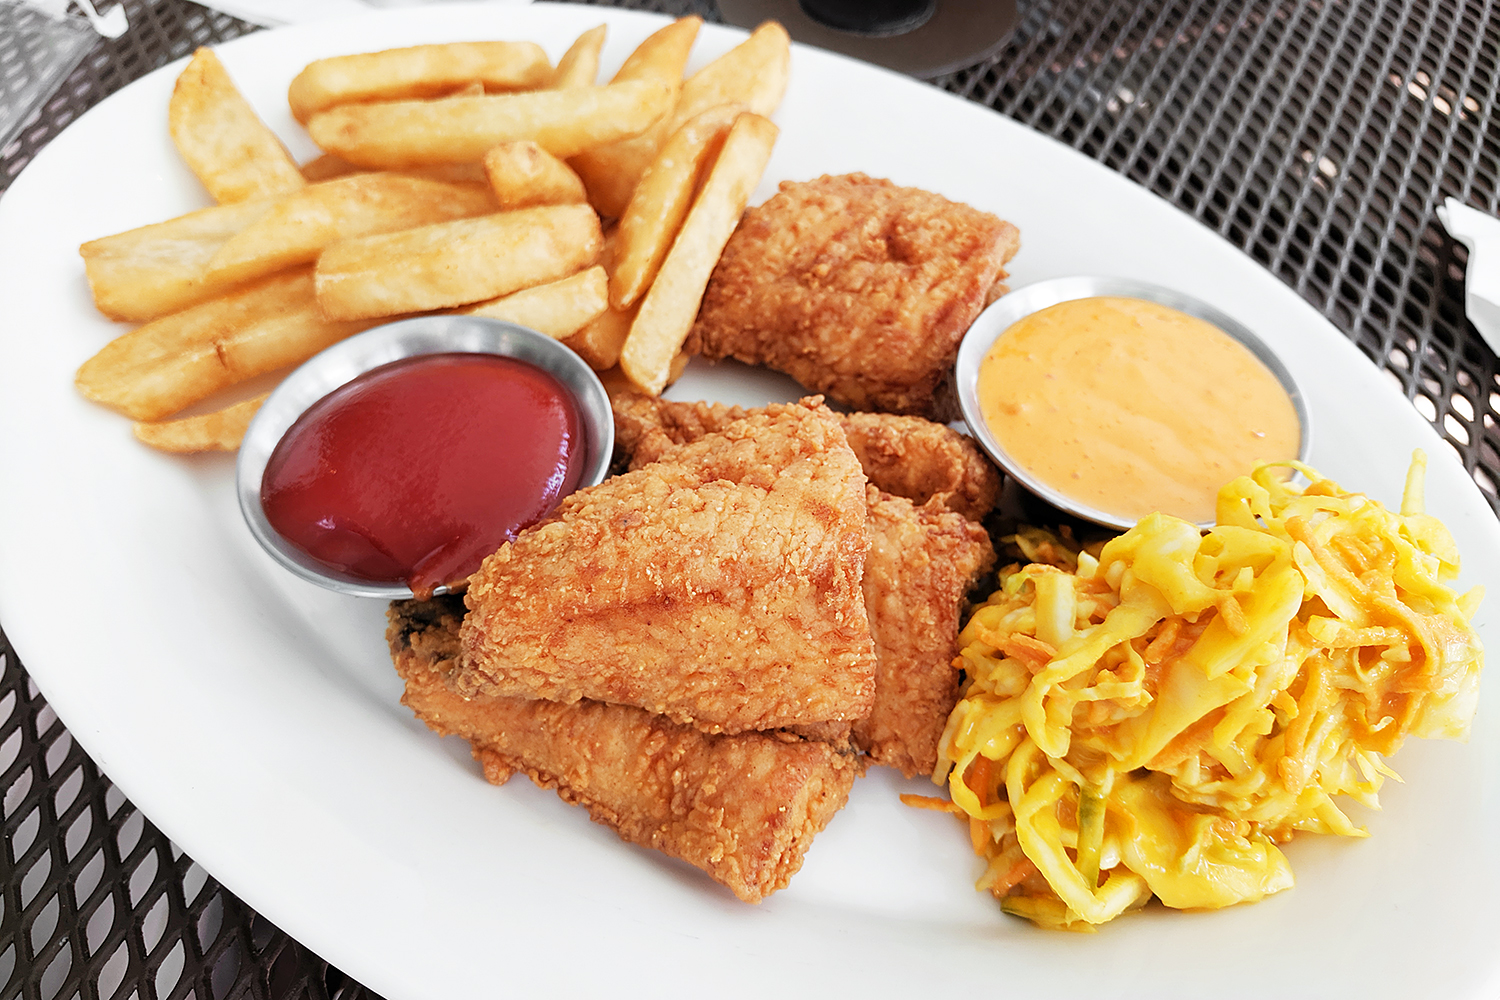 21mackinacisland-michigan-food-jamaican-batteredfish-slaw-travel